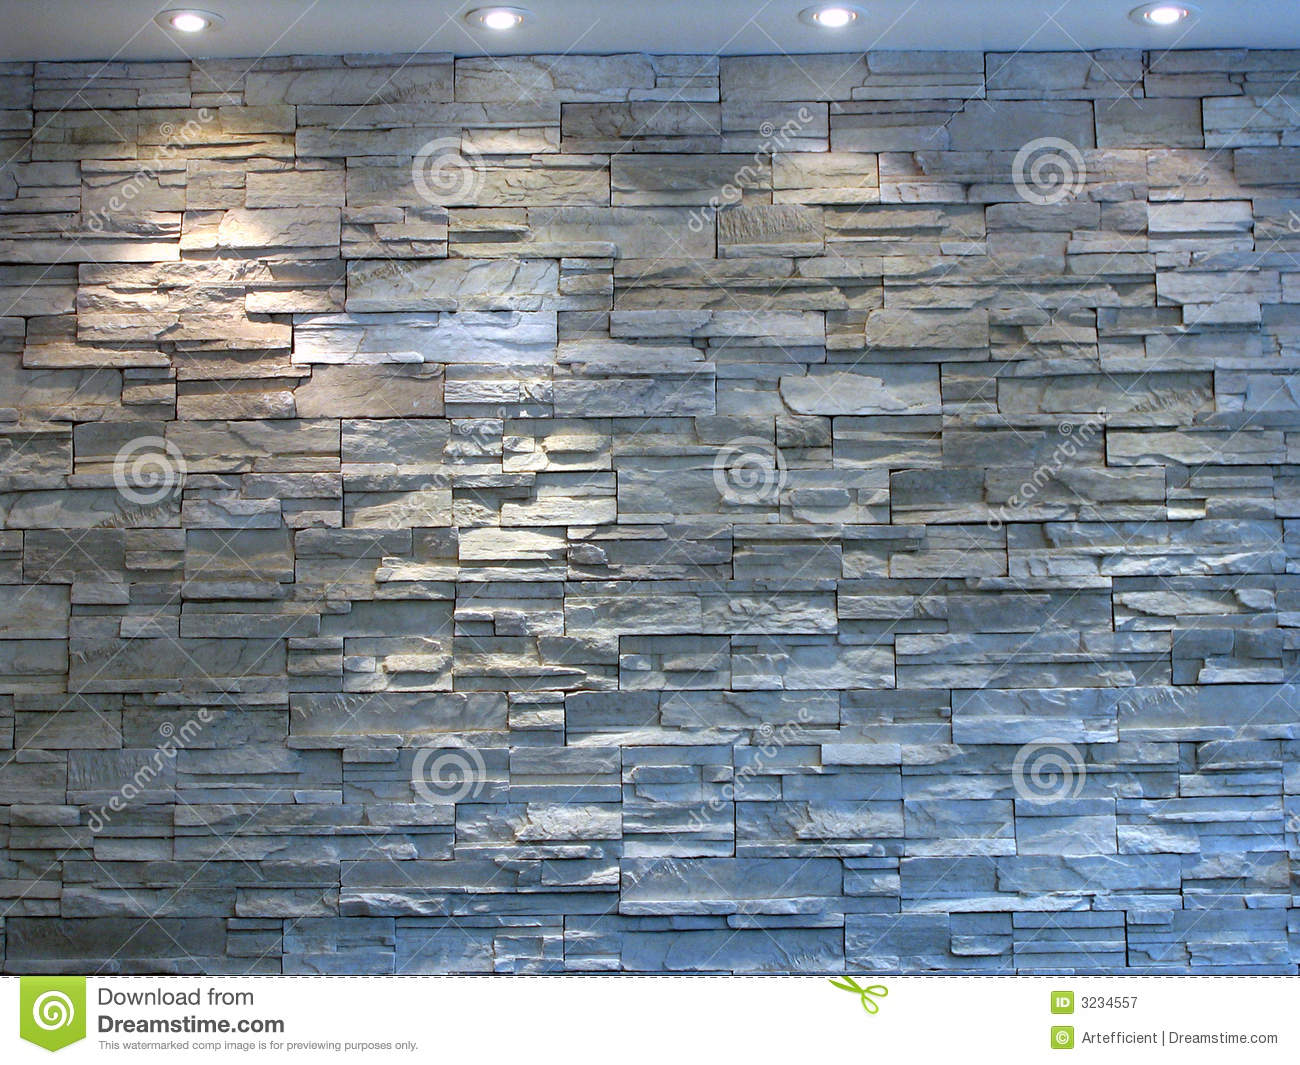 Mur en pierre blanc et gris photographie stock libre de - Mur en pierre decorative interieure ...